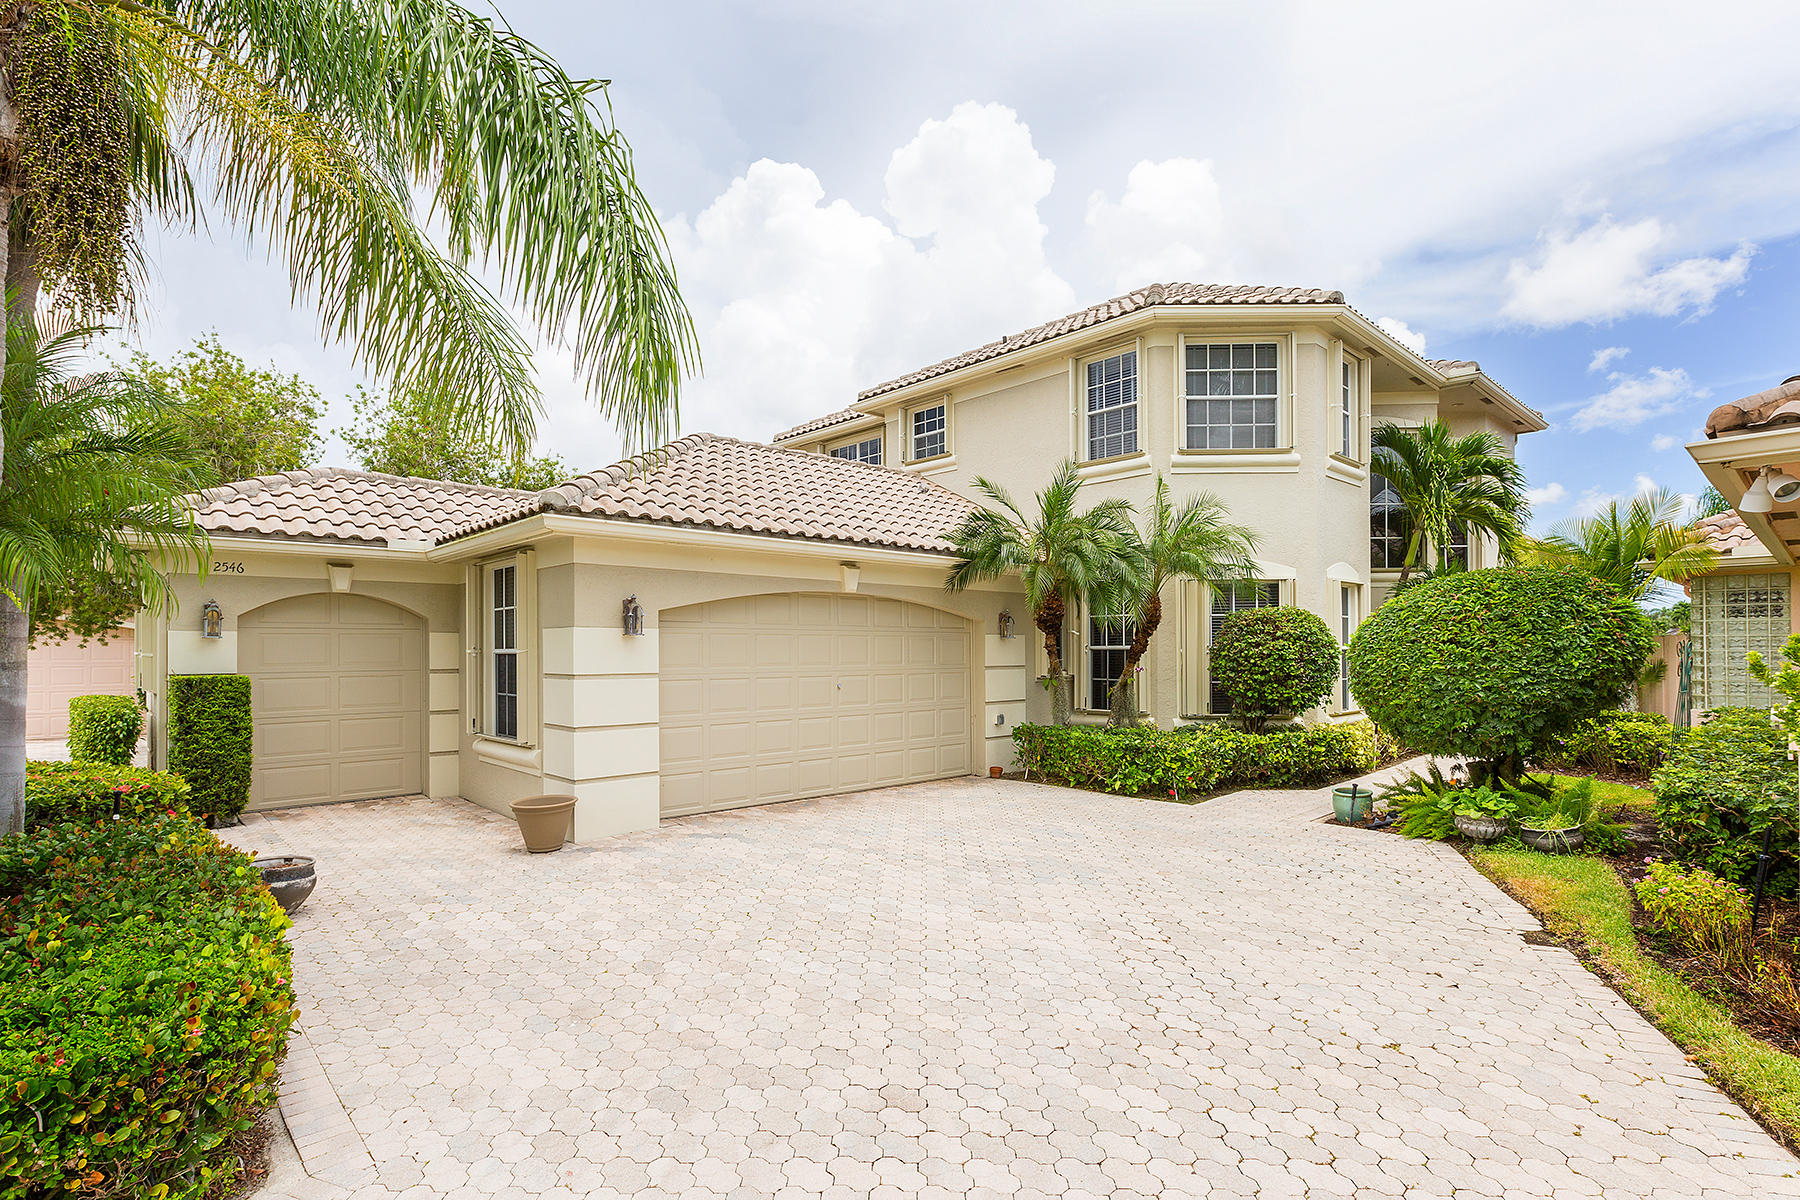 2546 Players Court, Wellington, Florida 33414, 4 Bedrooms Bedrooms, ,4.1 BathroomsBathrooms,Single Family,For Rent,Palm Beach Polo and Country Club,Players,1,RX-10573196